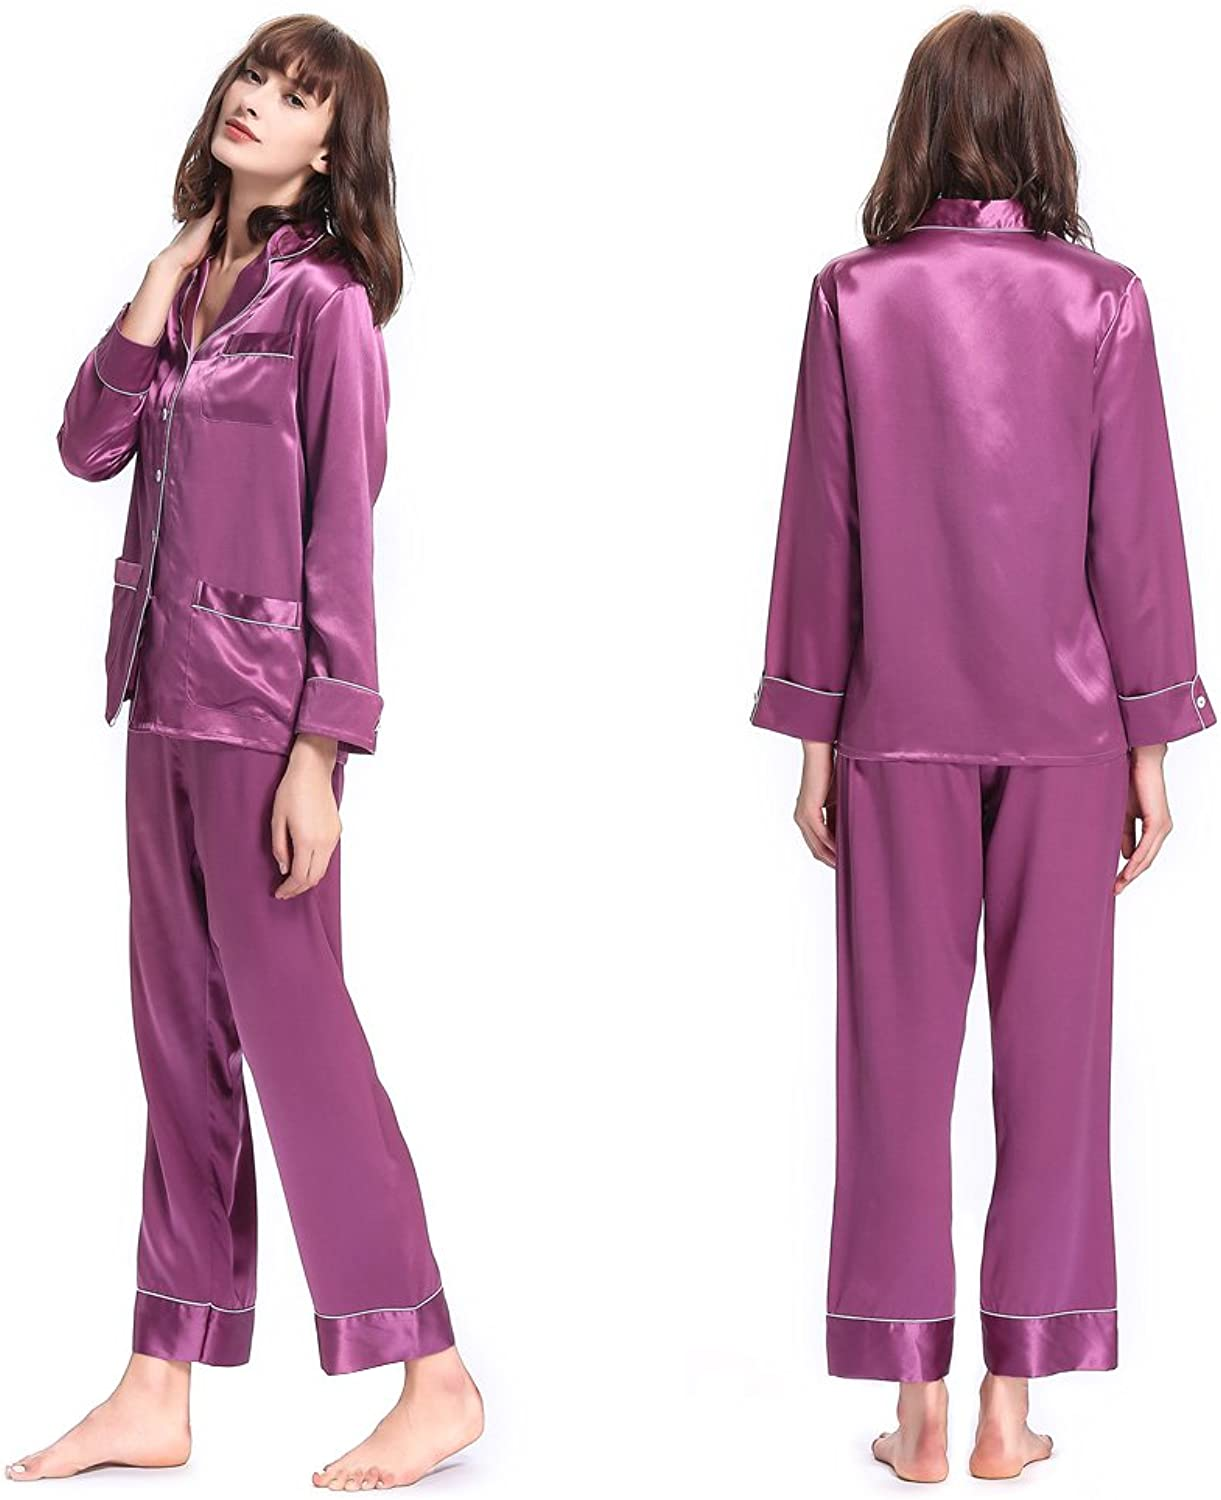 LilySilk Women's Long Silk Pajamas Set VNeck Notched Collar with White Trimmed